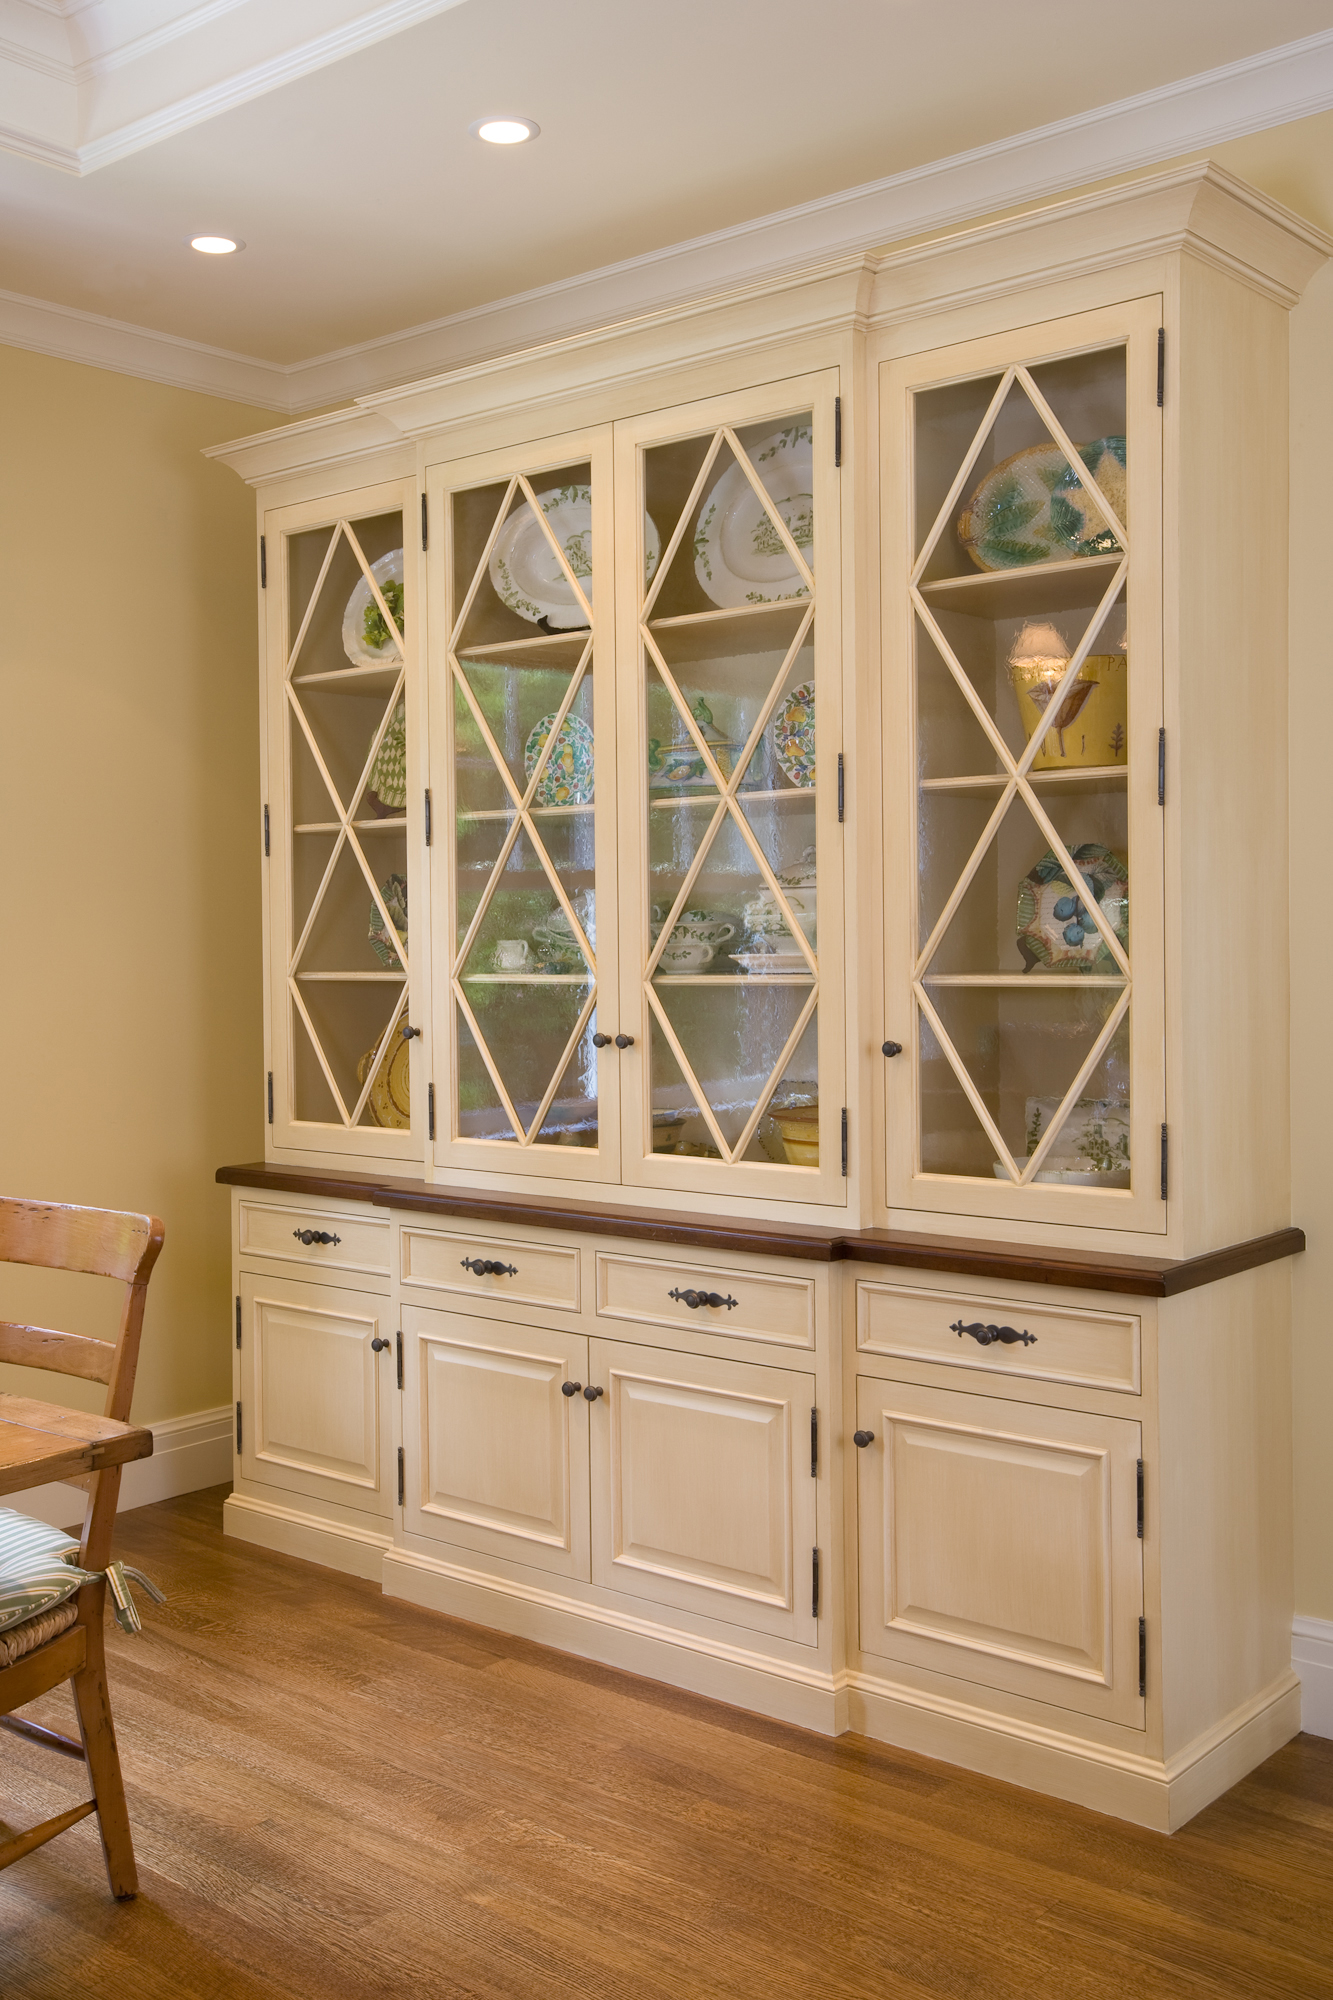 Designing And Building Fine Custom Cabinetry For 50 Years